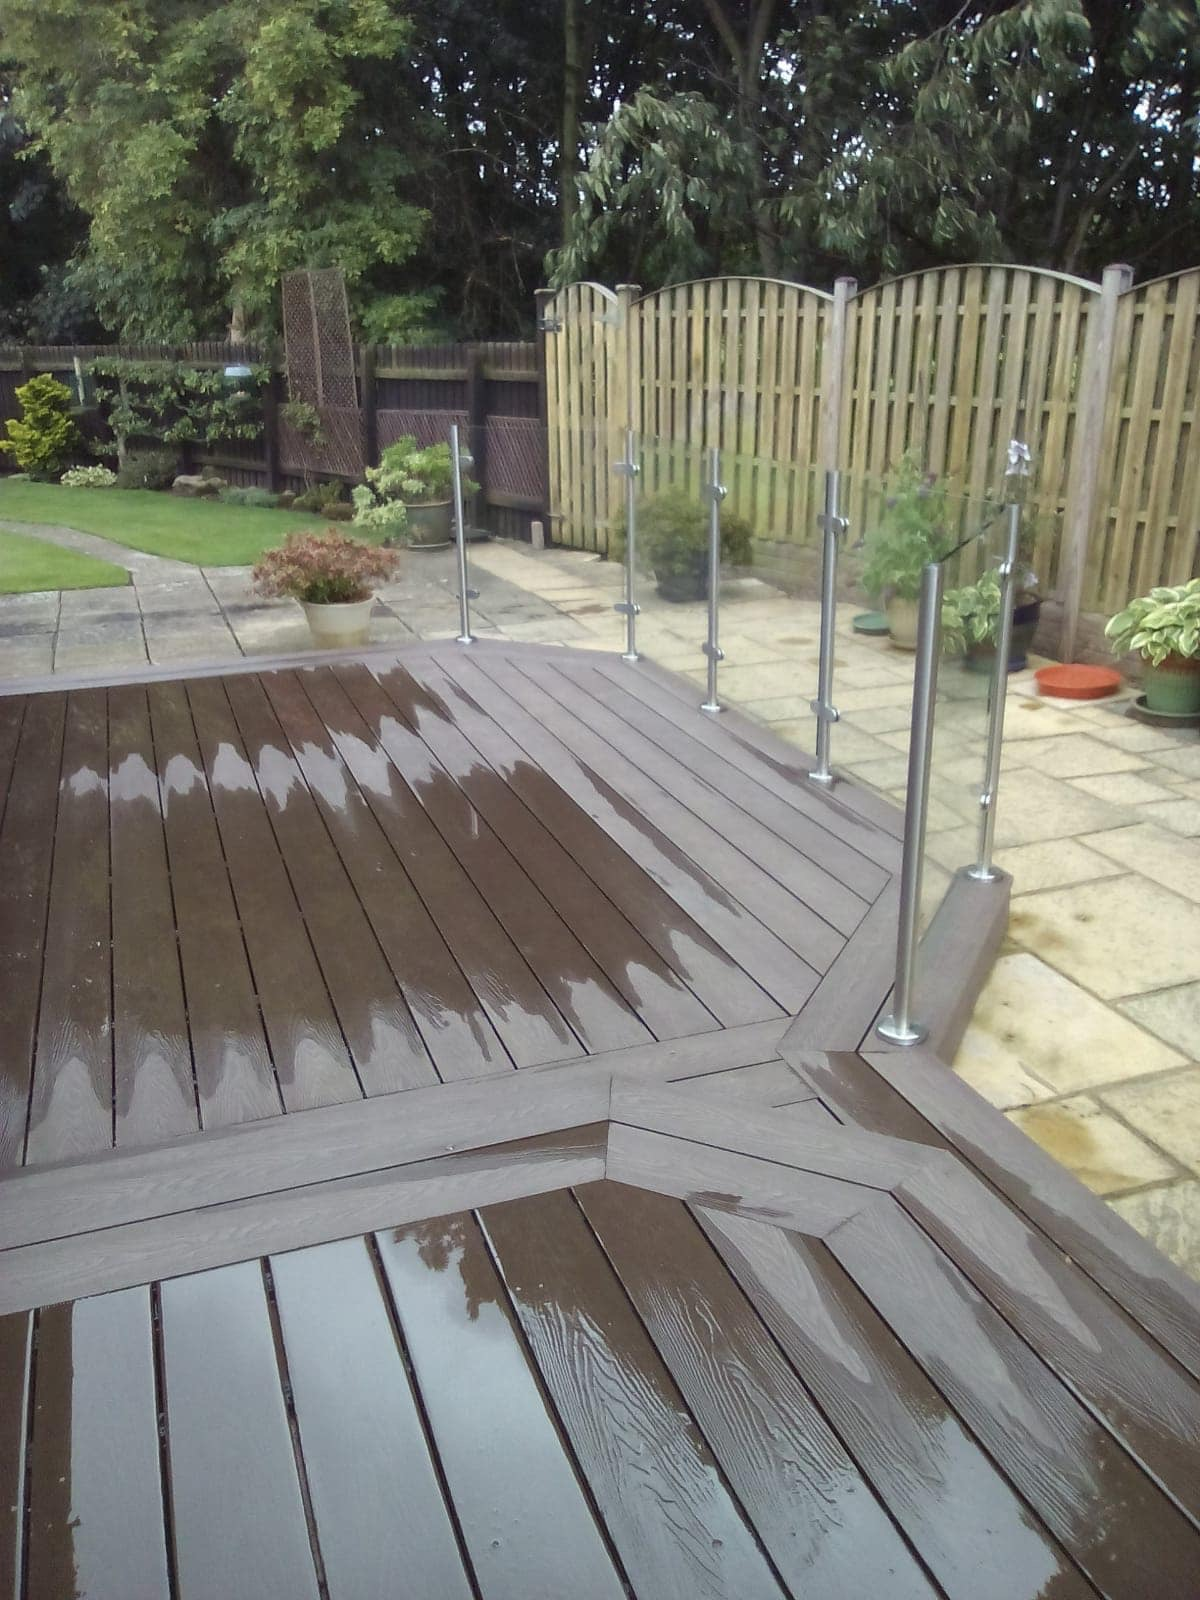 HERITAGE BROWN DEEP EMBOSSED COMPOSITE DECKING WITH GLASS BALUSTRADES AND STAINLESS STEEL POSTS